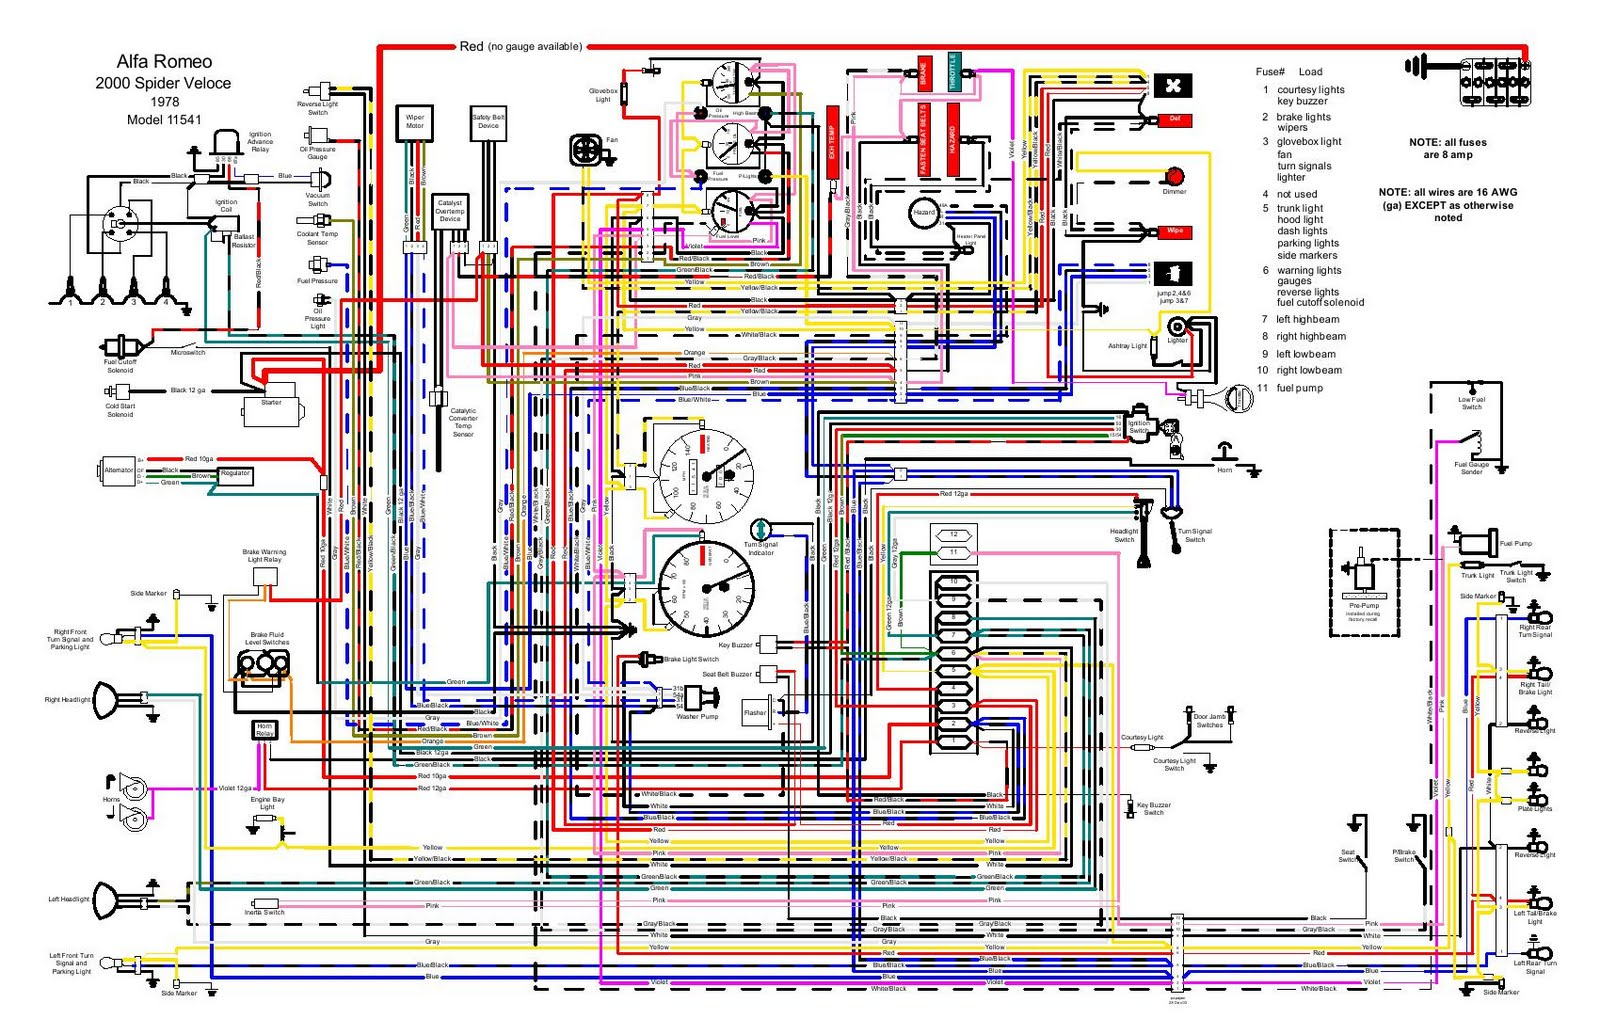 wiring diagram for 1978 alfa romeo spider CHaEWjz wiring diagram cars readingrat net wiring diagrams for cars at bakdesigns.co